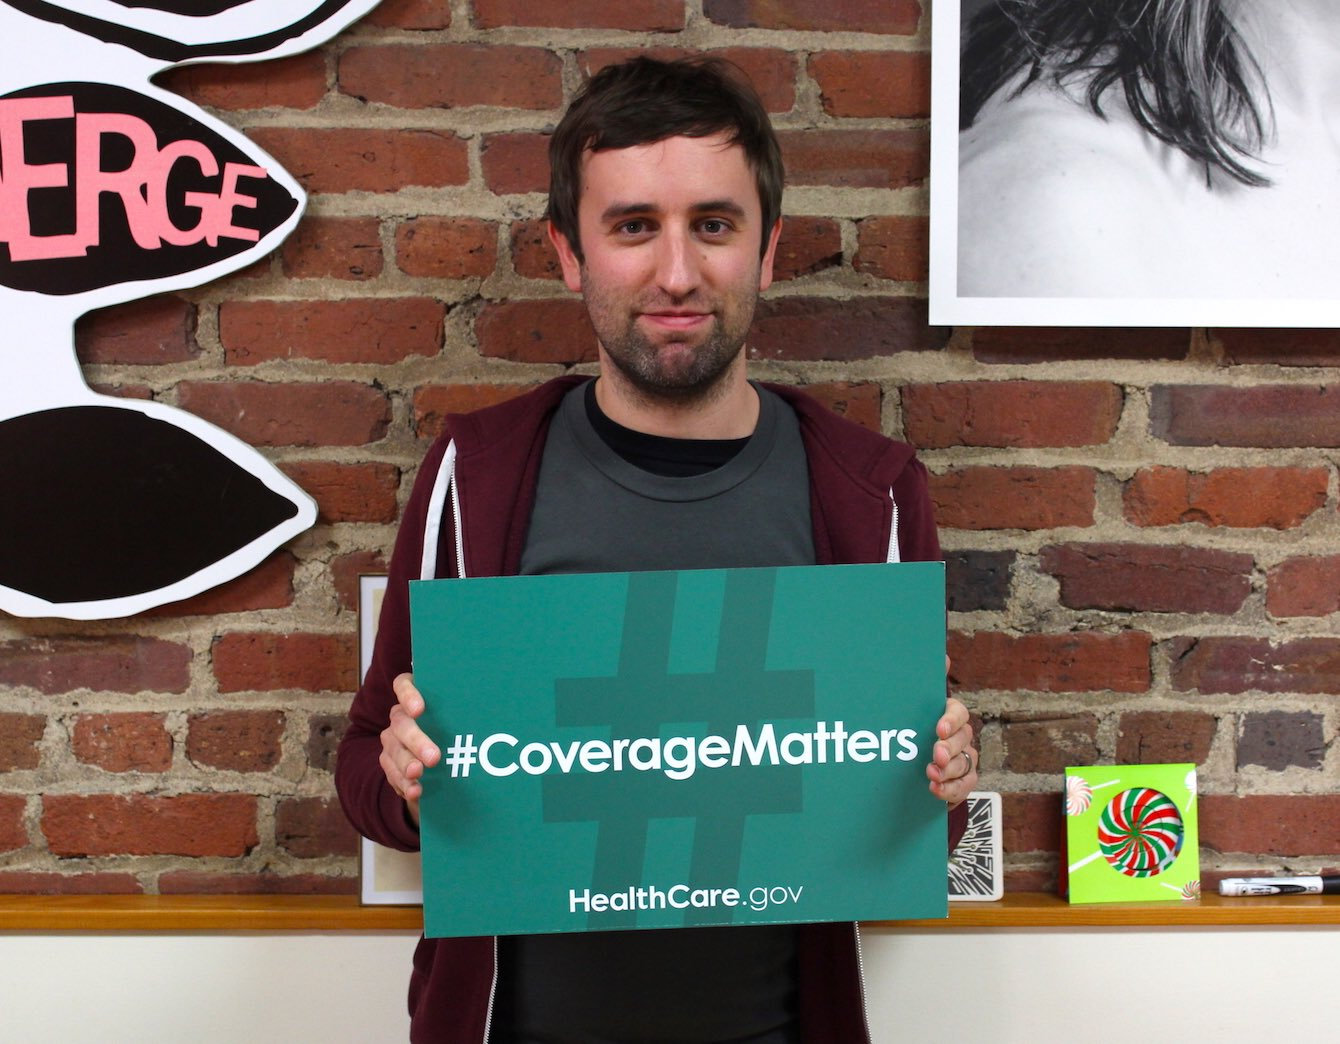 Protect the ACA. #CoverageMatters https://t.co/56xF8QAZZl